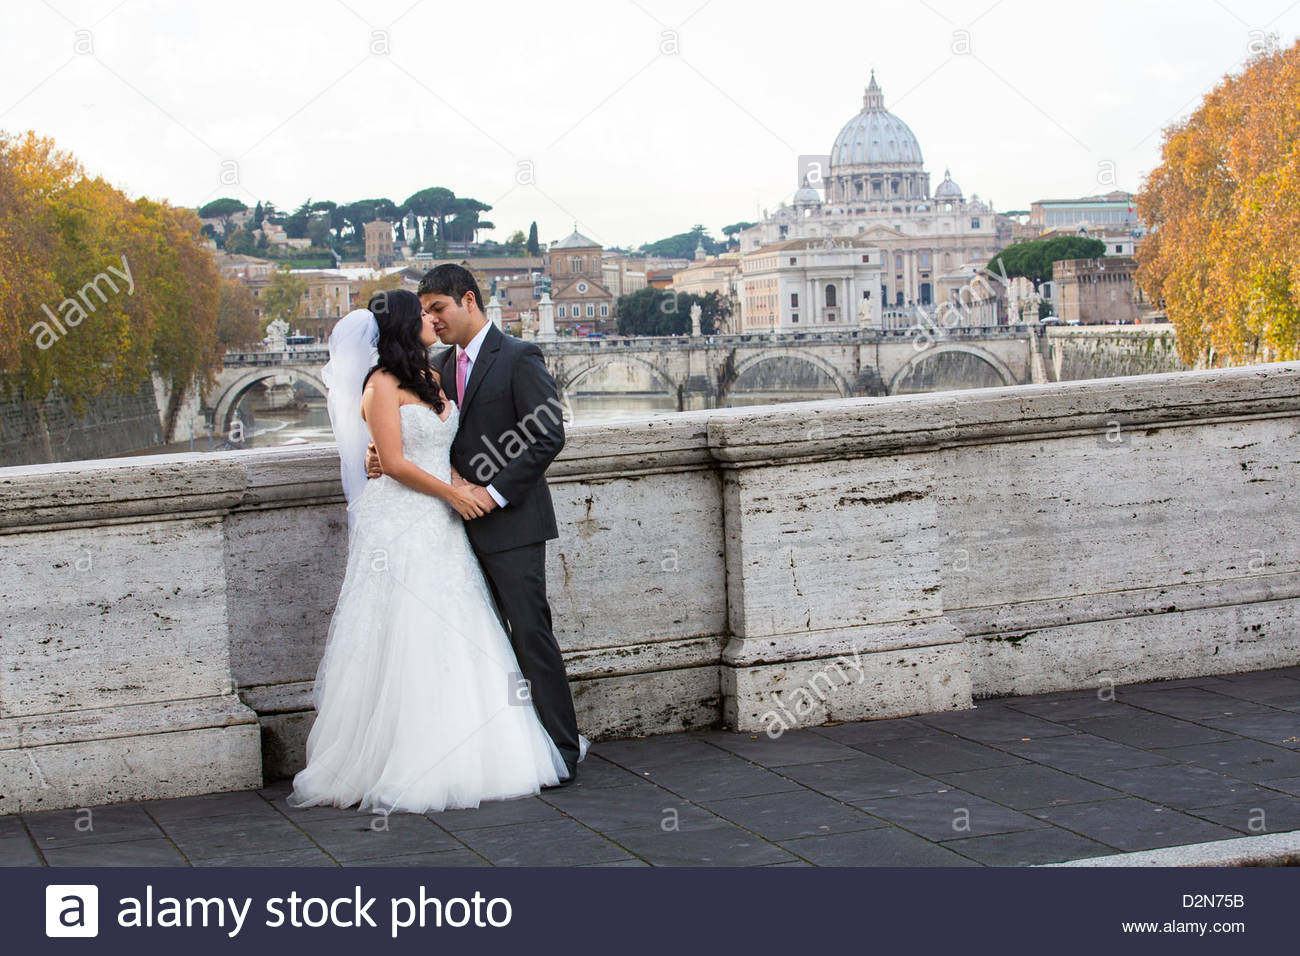 Newlyweds on Ponte Sisto bridge - Stock Image